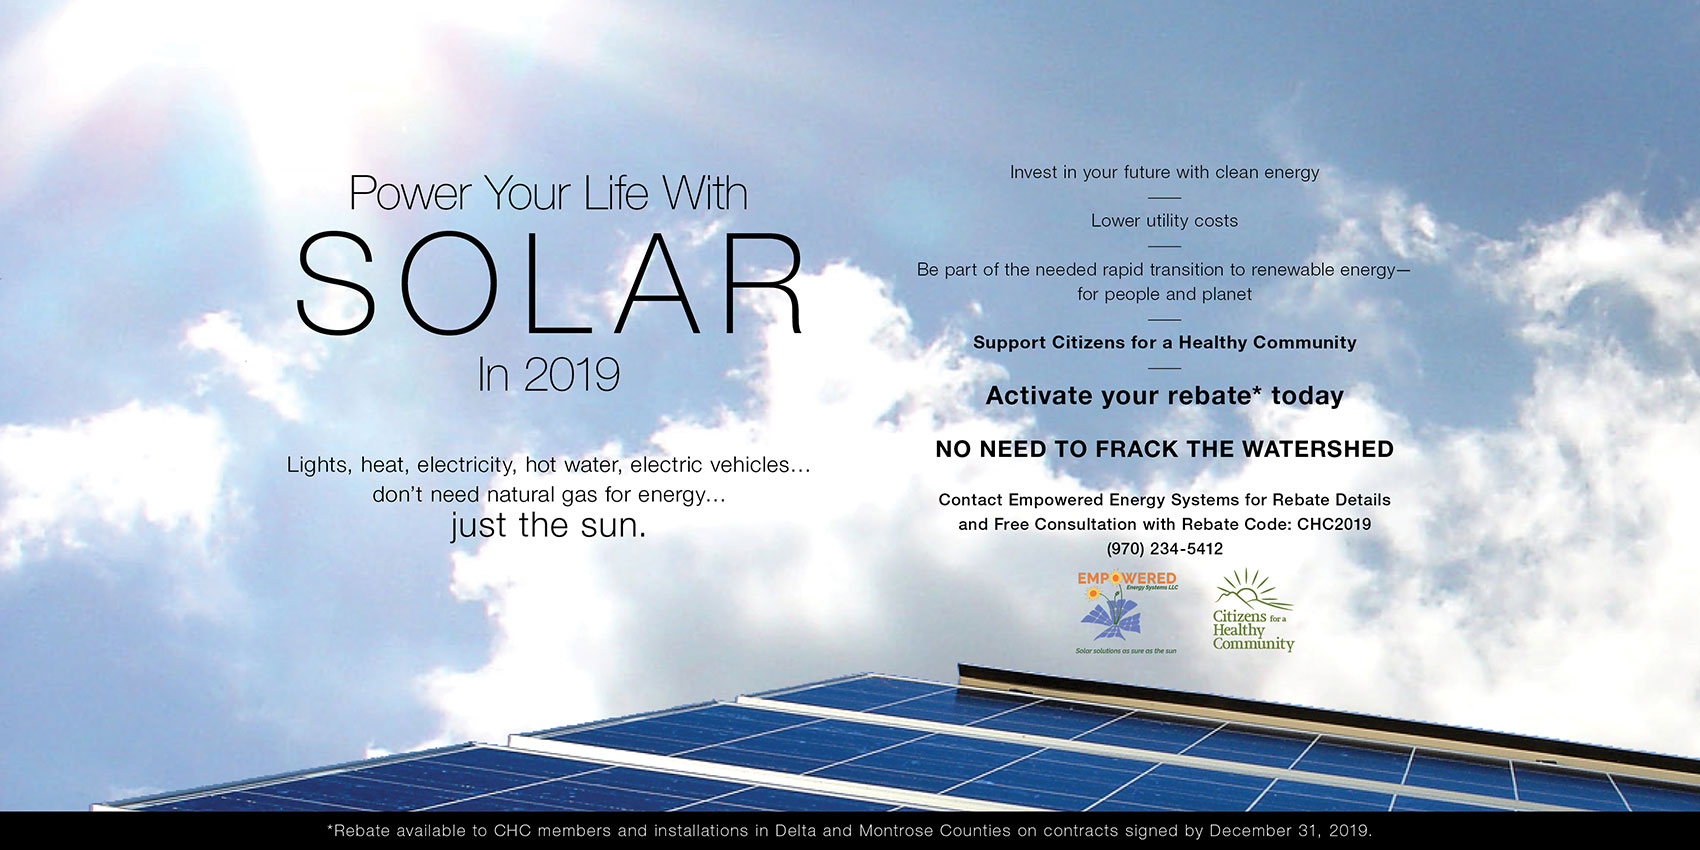 Substitute Solar - Citizens for a Healthy Community